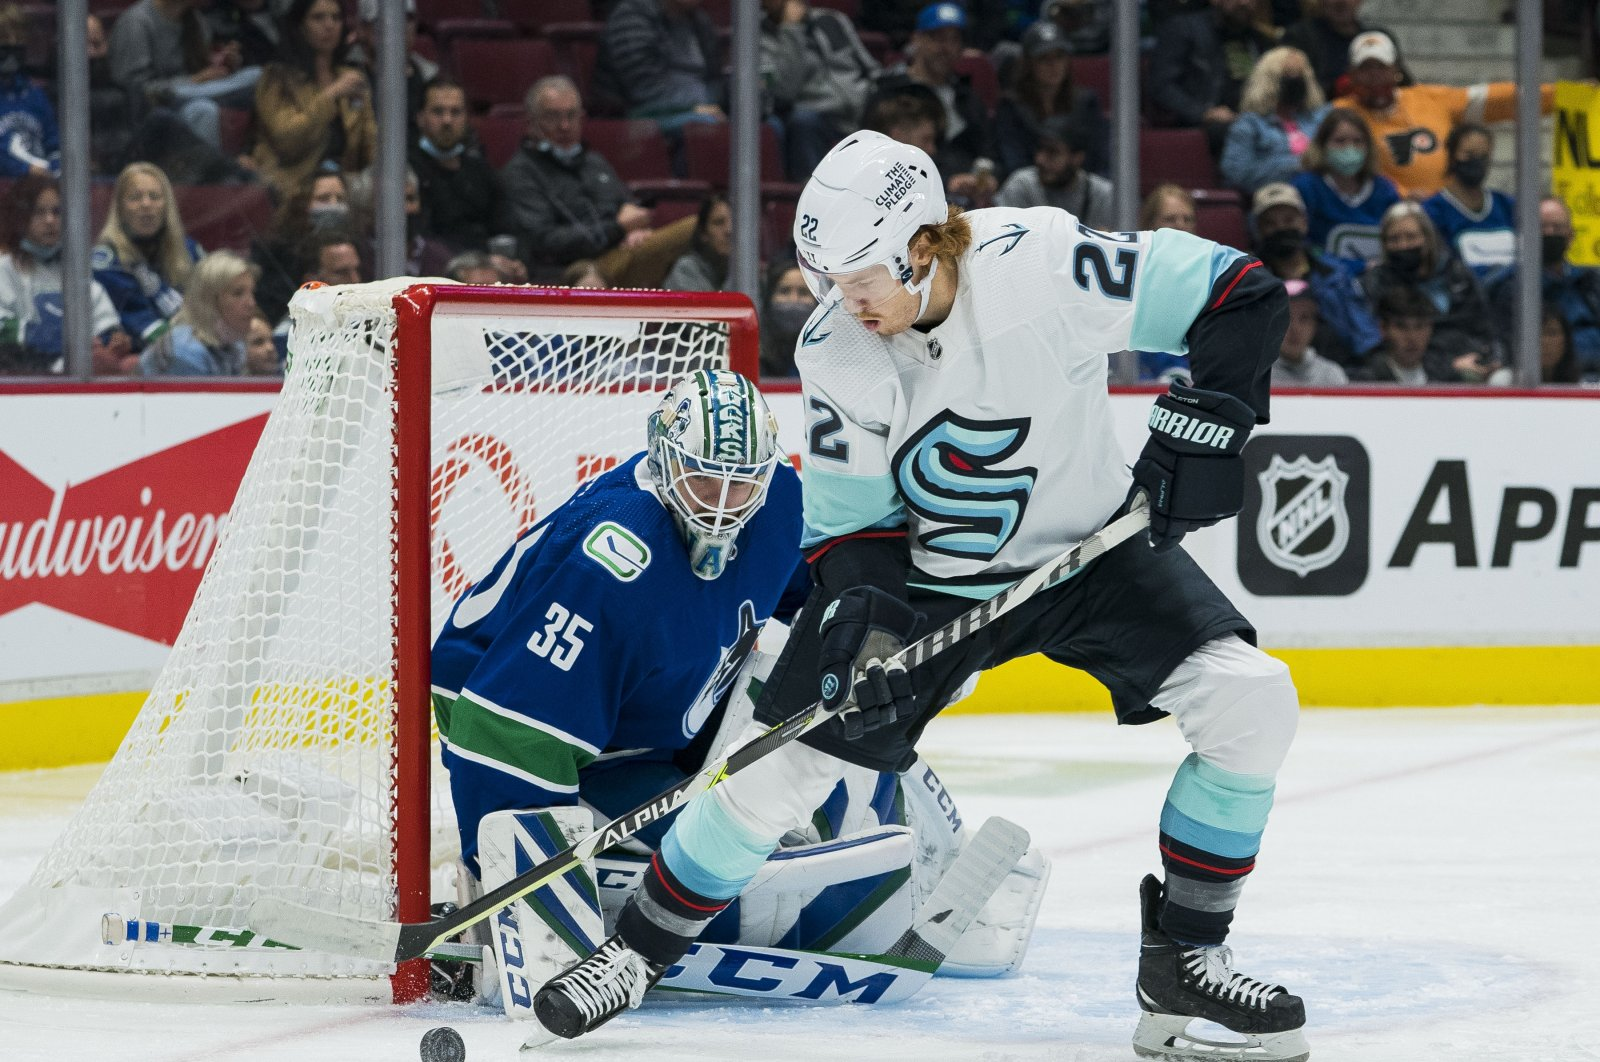 Vancouver Canucks goalie Thatcher Demko (35) makes a save against Seattle Kraken forward Mason Appleton (22) in the second period at Rogers Arena, Vancouver, Canada, Oct. 5, 2021. (Bob Frid-USA TODAY Sports via Reuters)